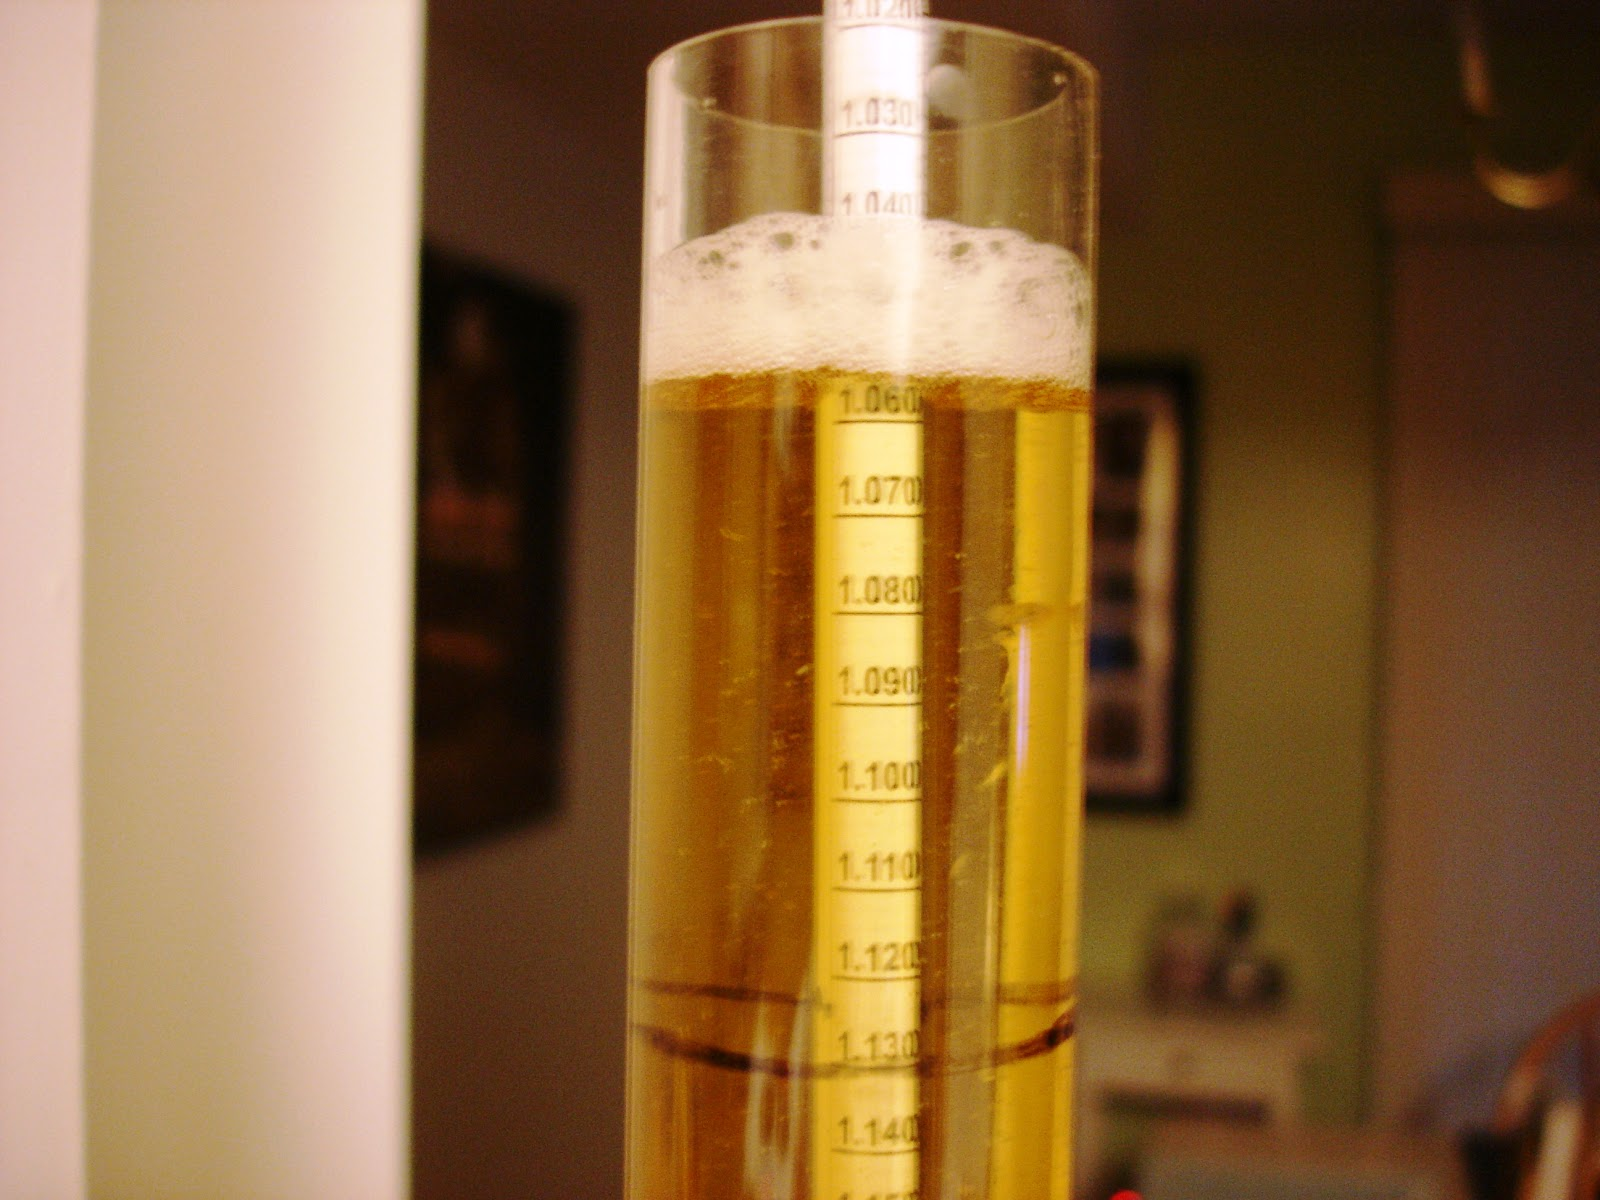 How to Use a Beer Hydrometer